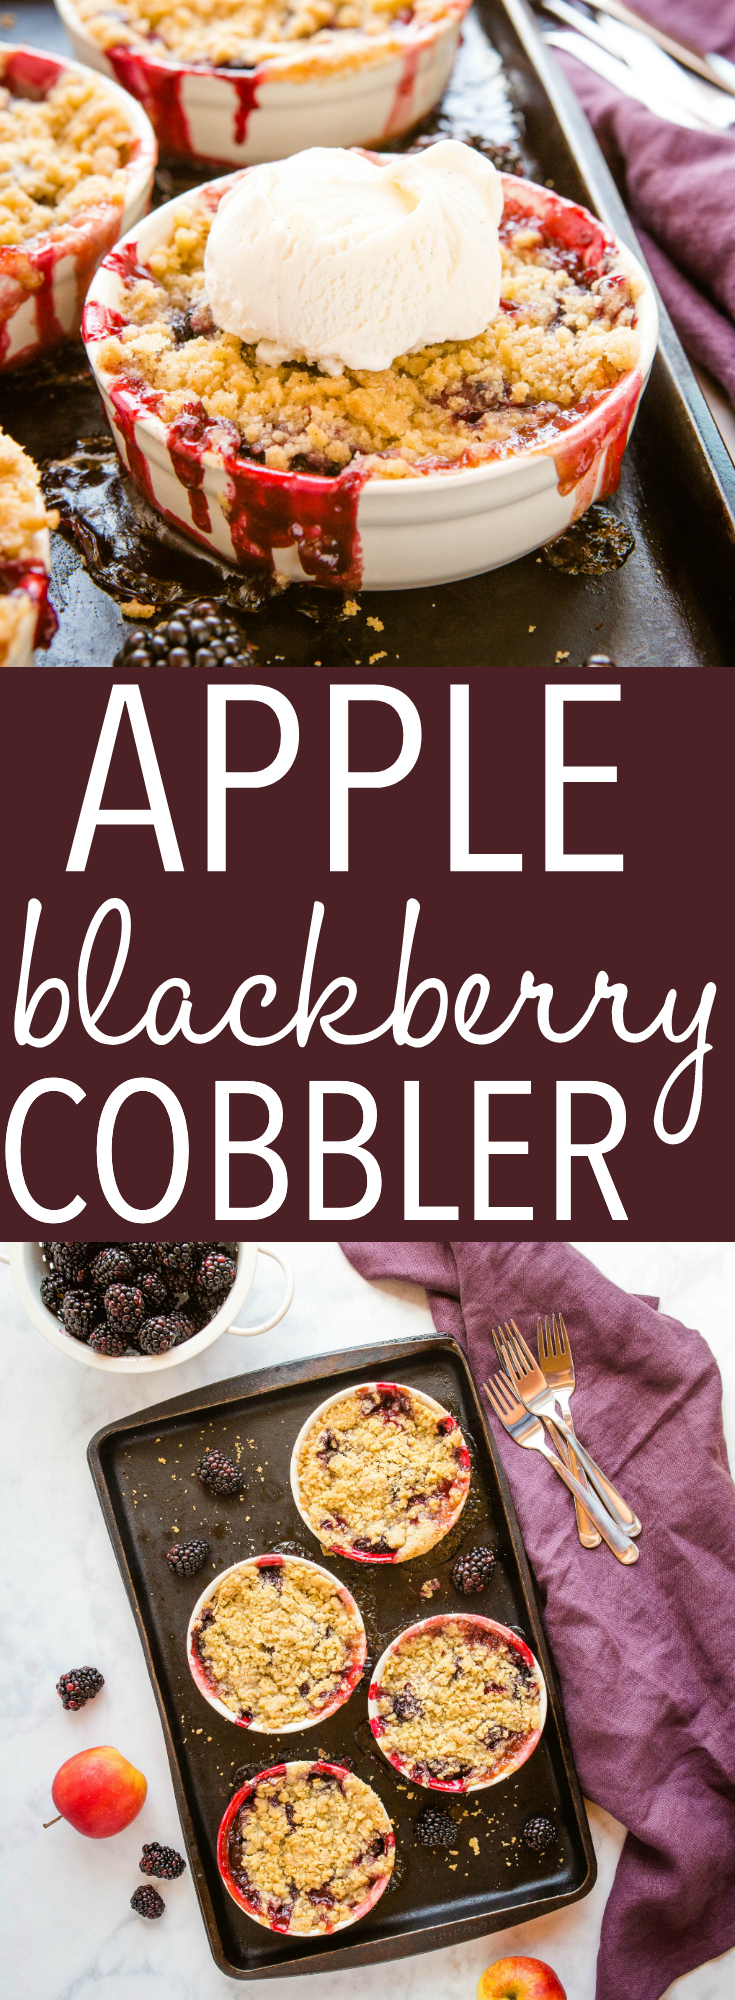 This Apple Blackberry Crumble is the perfect single-serving dessert made with fresh blackberries and apples and a sweet crumble topping.Recipe from thebusybaker.ca! #apple #blackberry #crumble #crisp #fruit #dessert #fruitcrumble #summer #sweet #homemade via @busybakerblog